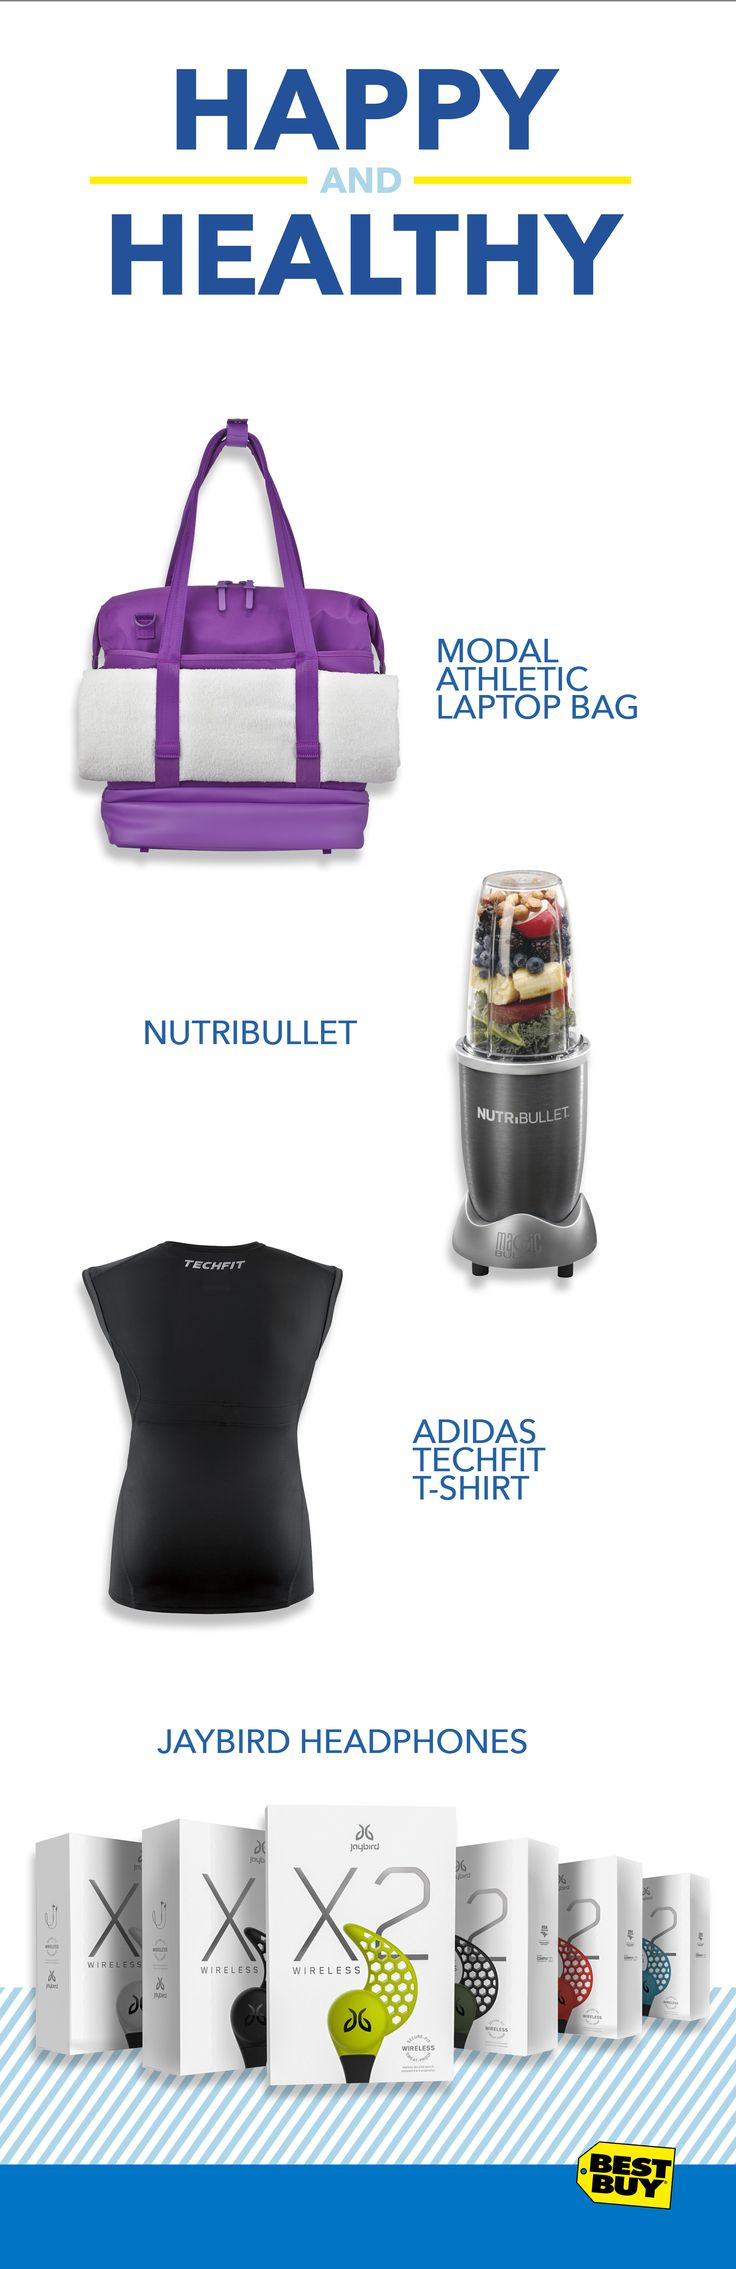 Still need to find the perfect gift? Best Buy's gift Ideas have everything you want for that fitness guru in your life.